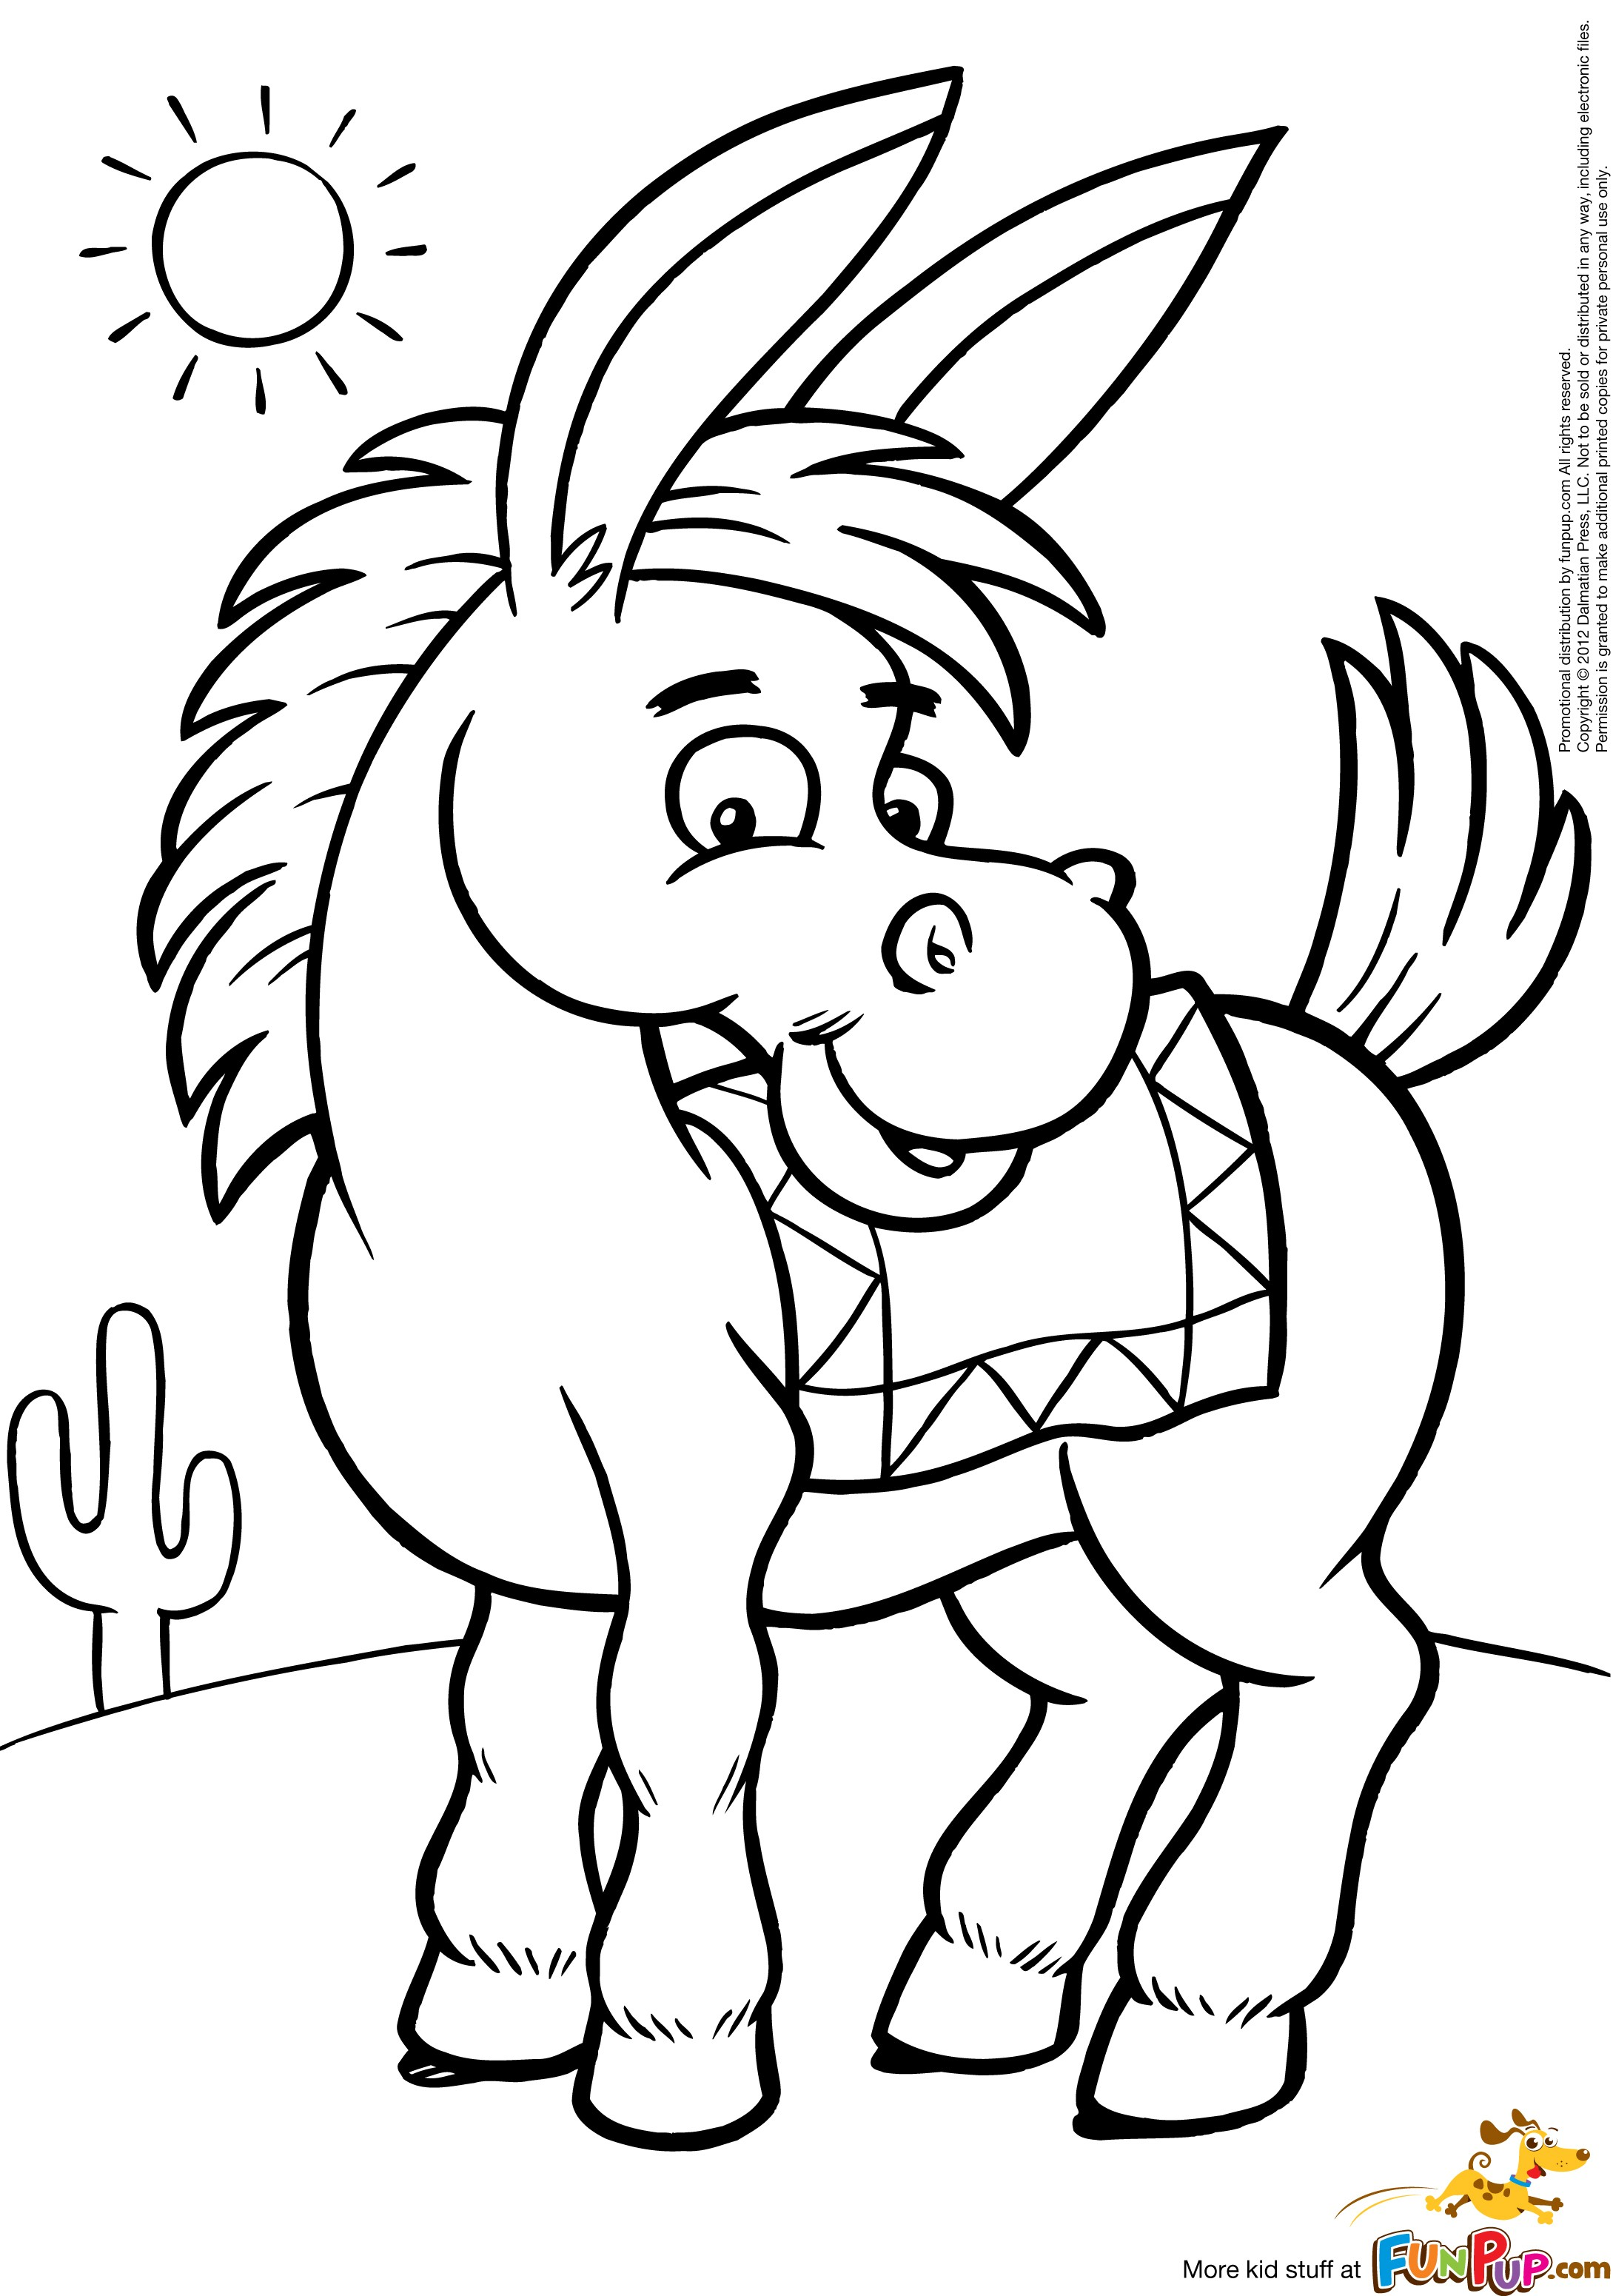 color pages to print april coloring pages best coloring pages for kids print to pages color